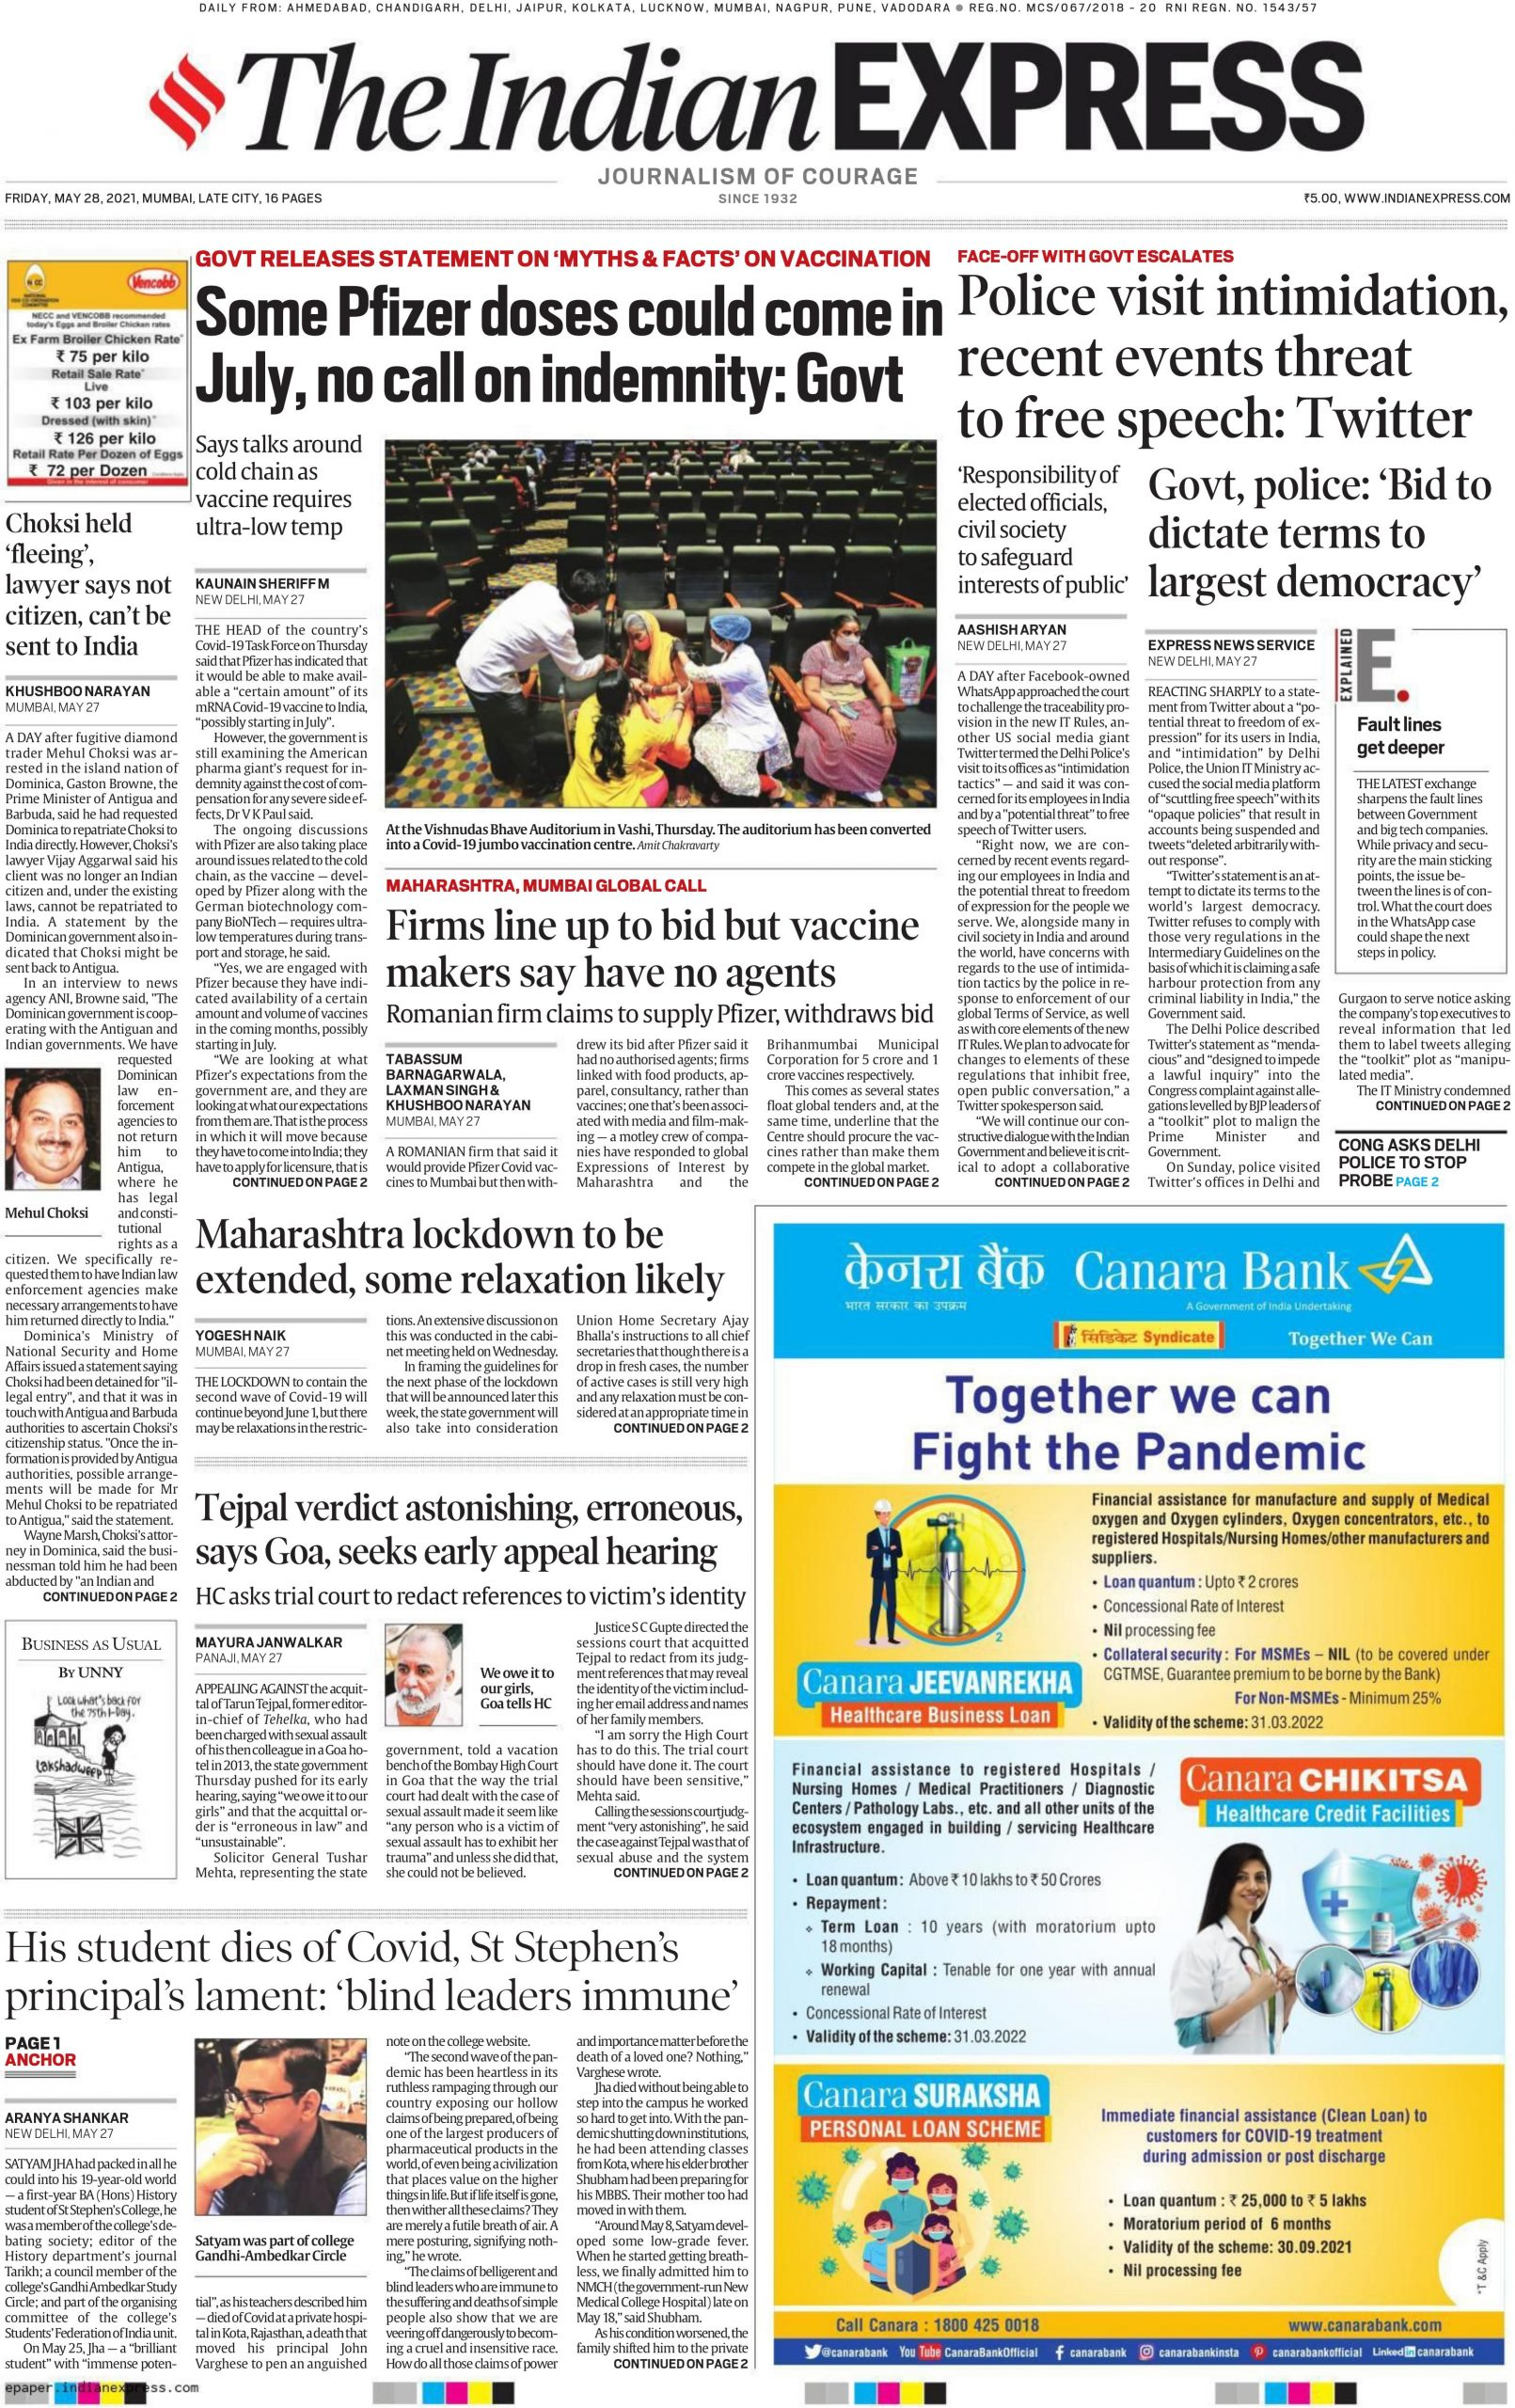 The Indian Express 28th may 2021